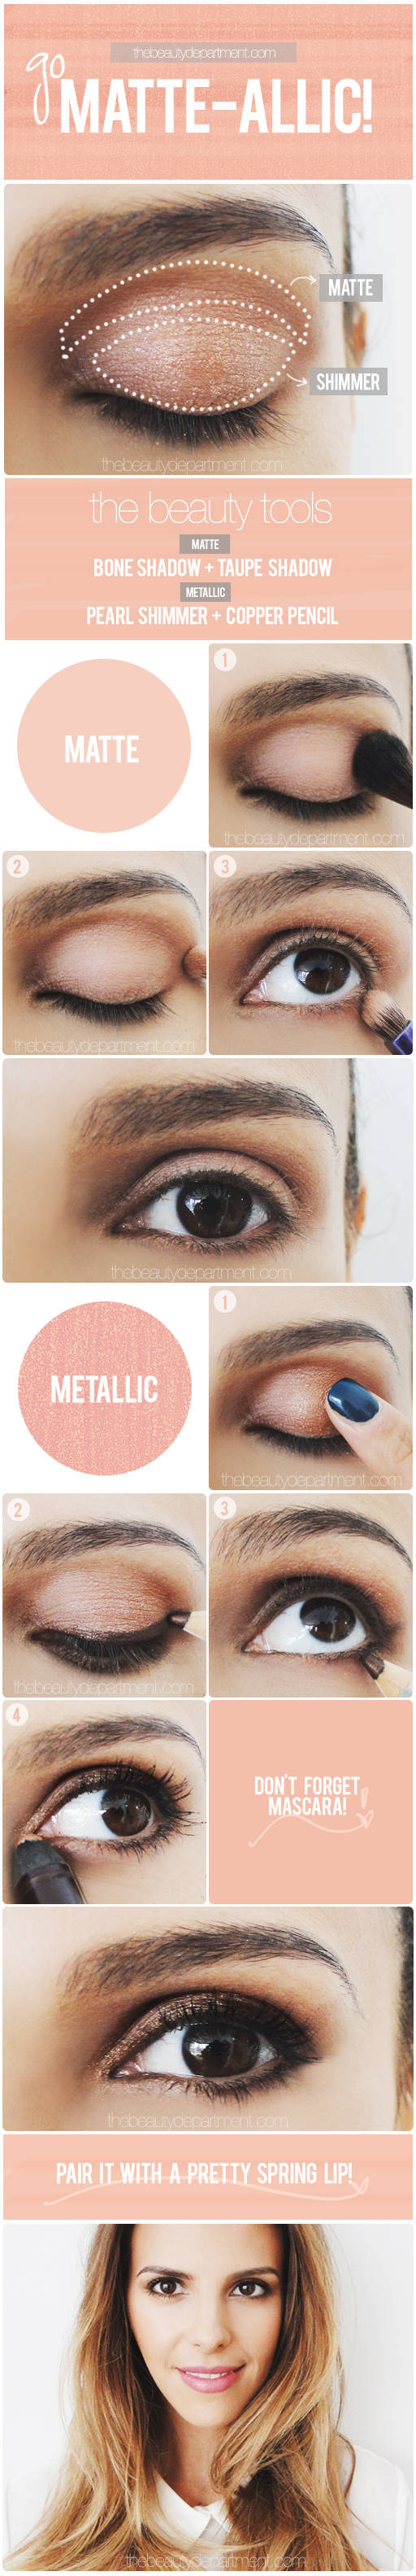 matte-alic eye tutorial....I especially love the matte version of these blended metallic and matte shadow styles. {via the beauty department}